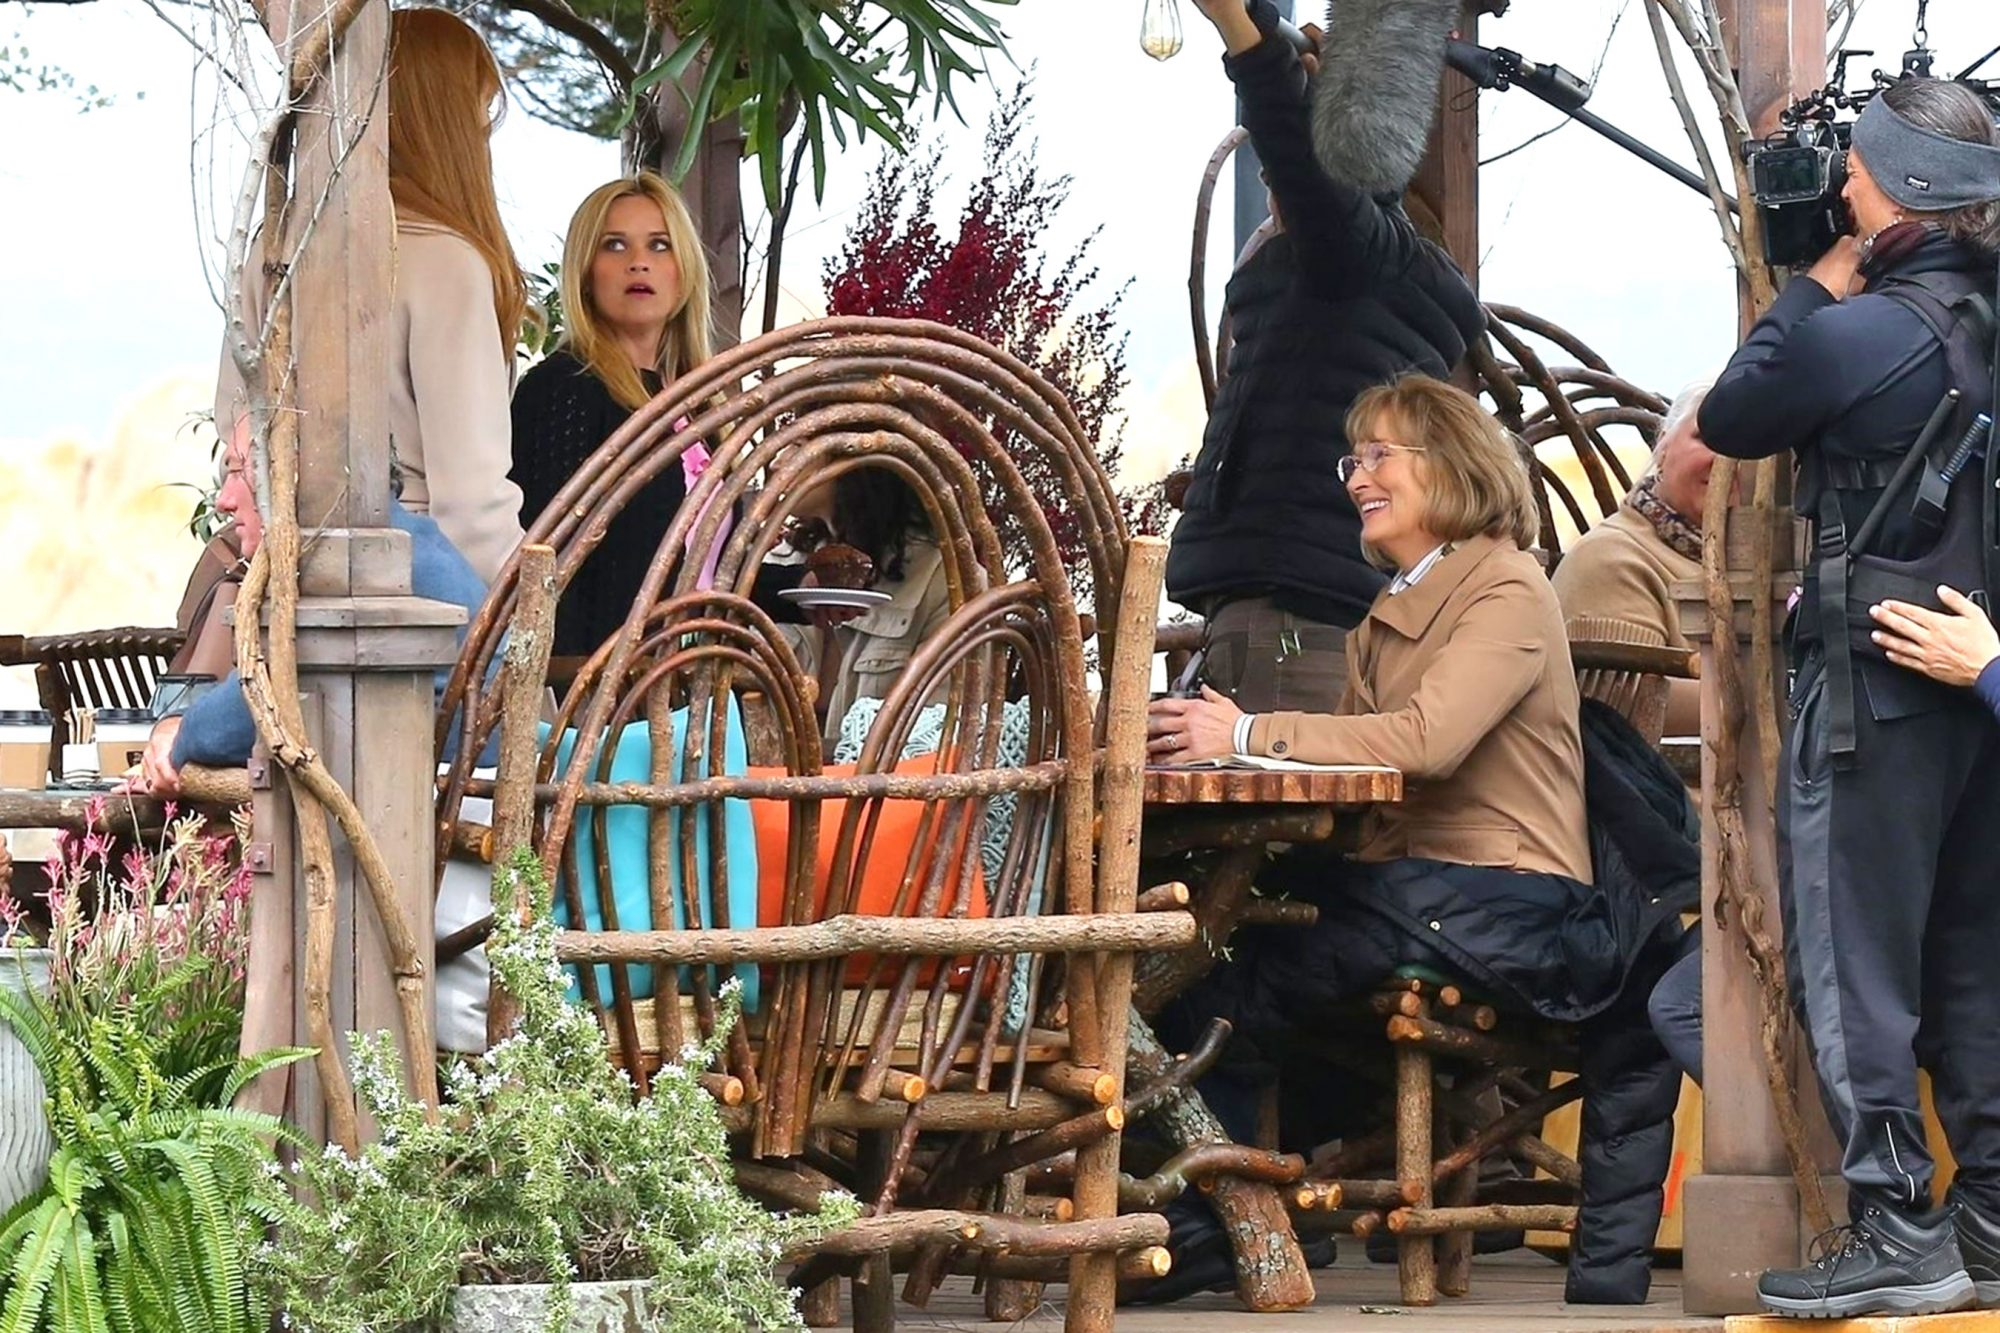 *EXCLUSIVE* Reese Witherspoon, Nicole Kidman and Meryl Streep on the set of 'Big Little Lies'